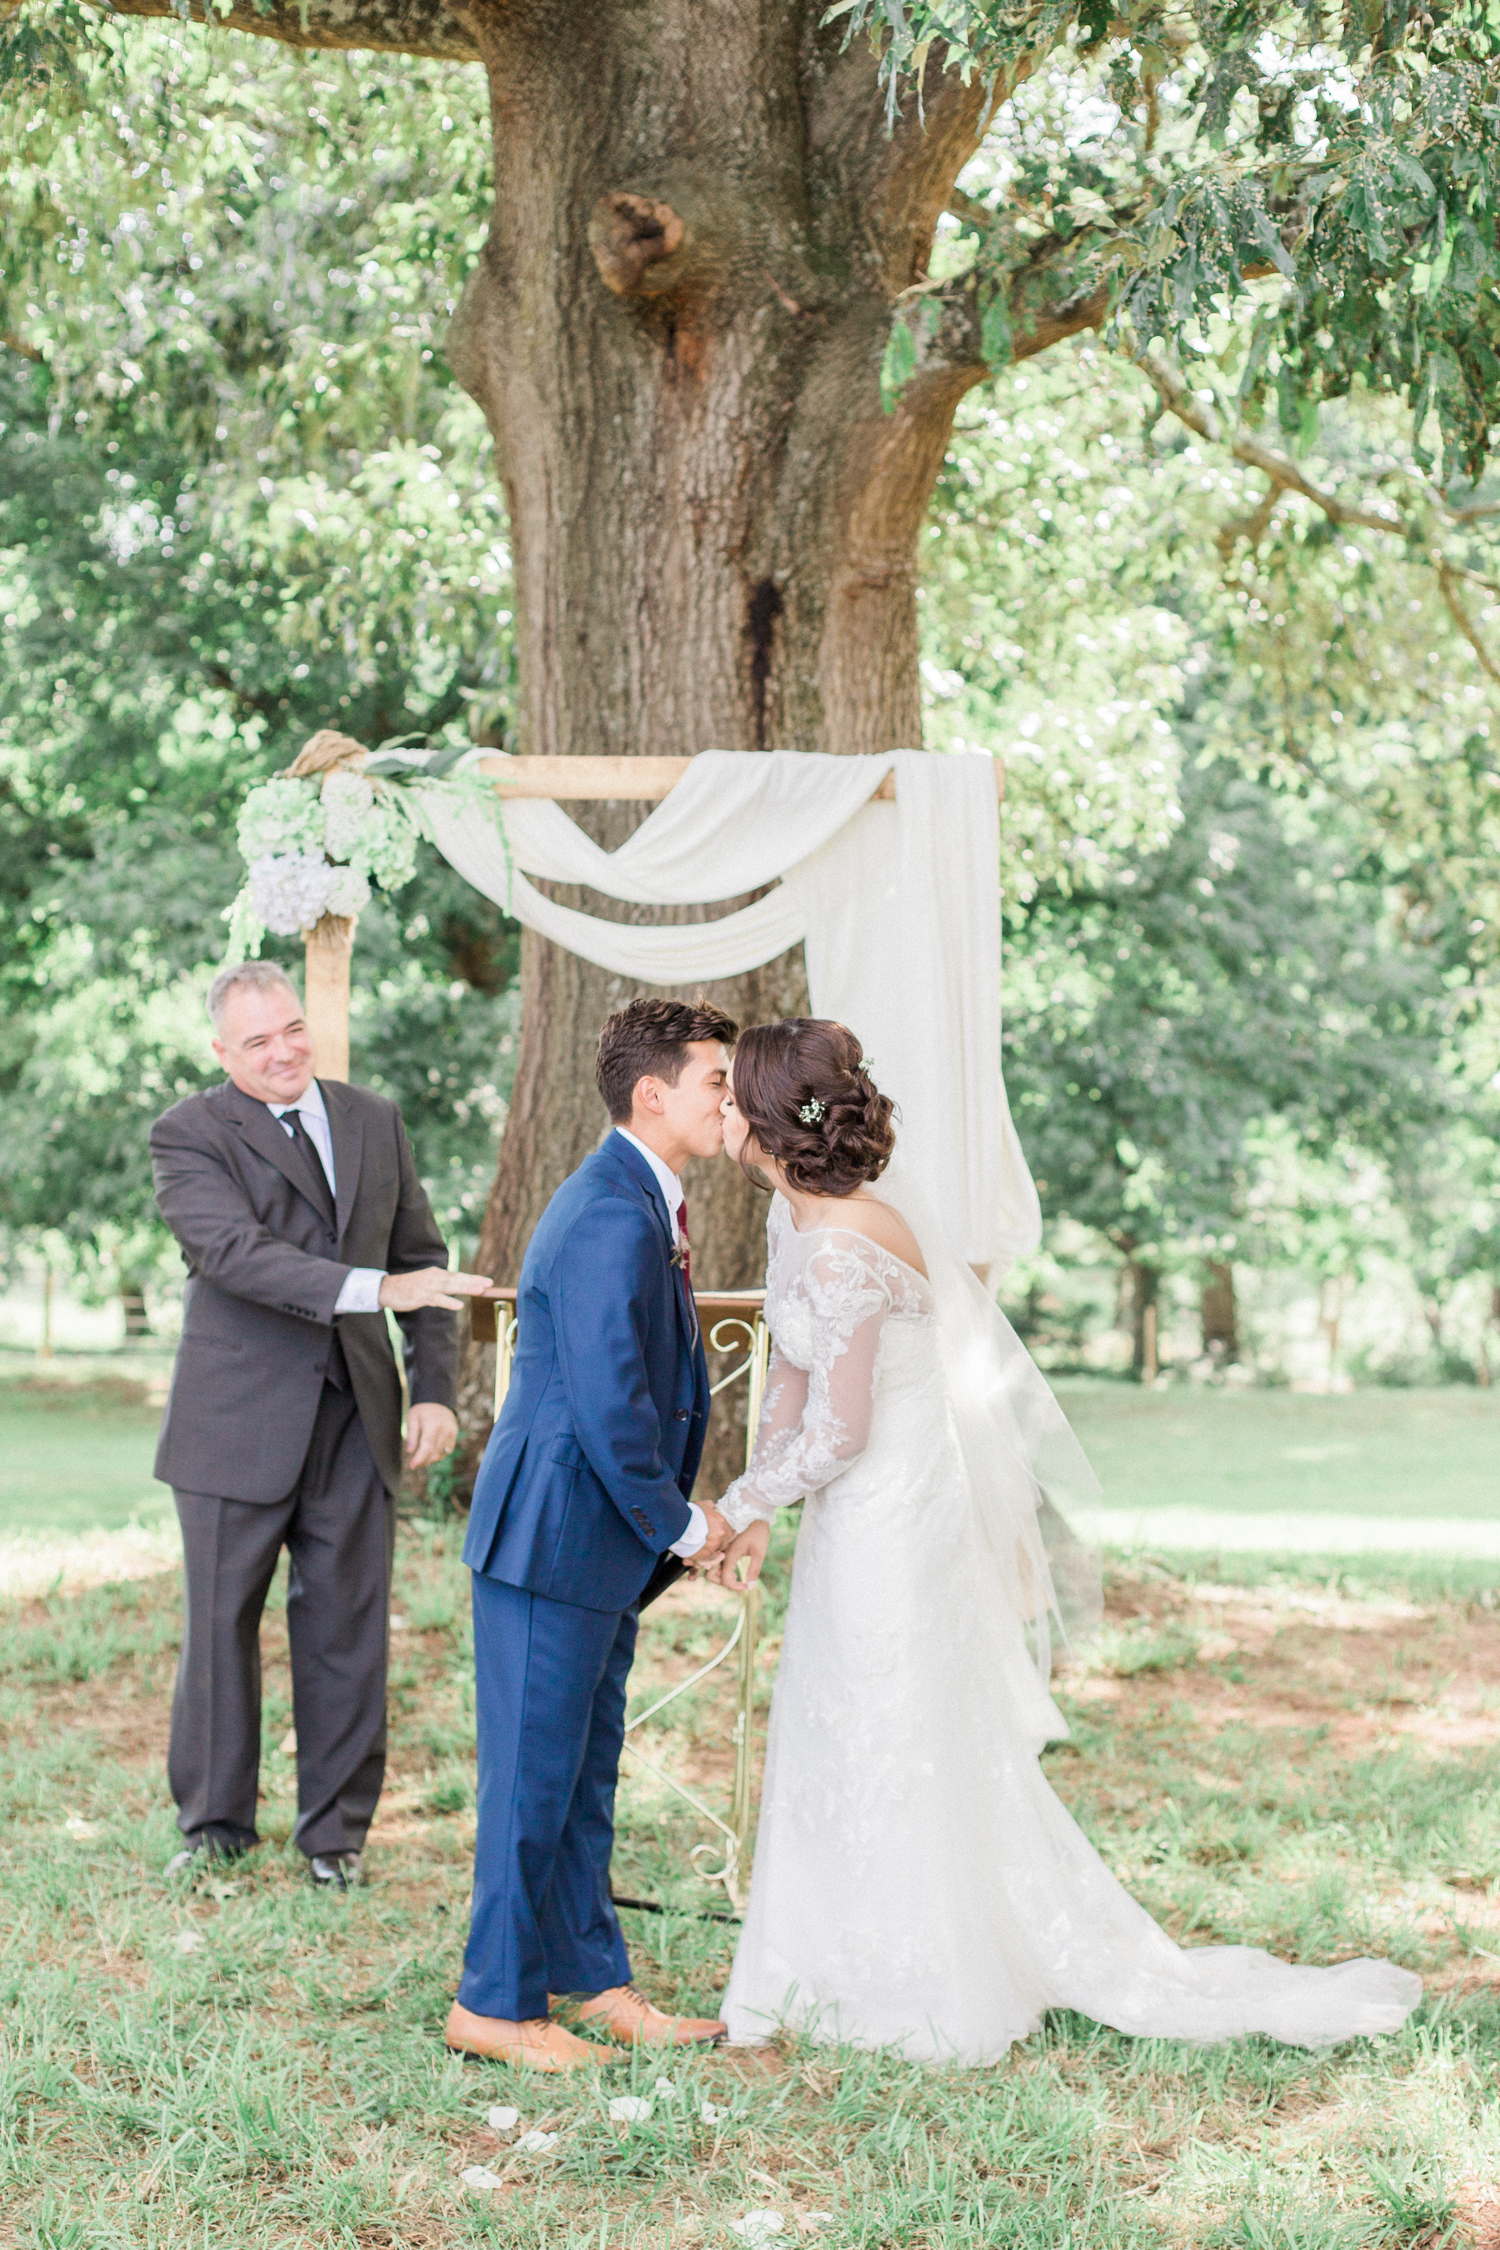 First kiss as husband and wife during an outdoor ceremony infant of a wooden arbor decorated with hydrangeas and draped fabric. Summer, outdoor, barn wedding in north Georgia at Hays McDonald Farm in Jefferson, Georgia. Photo by Kesia Marie Photography- Fine Art Wedding Photographer.